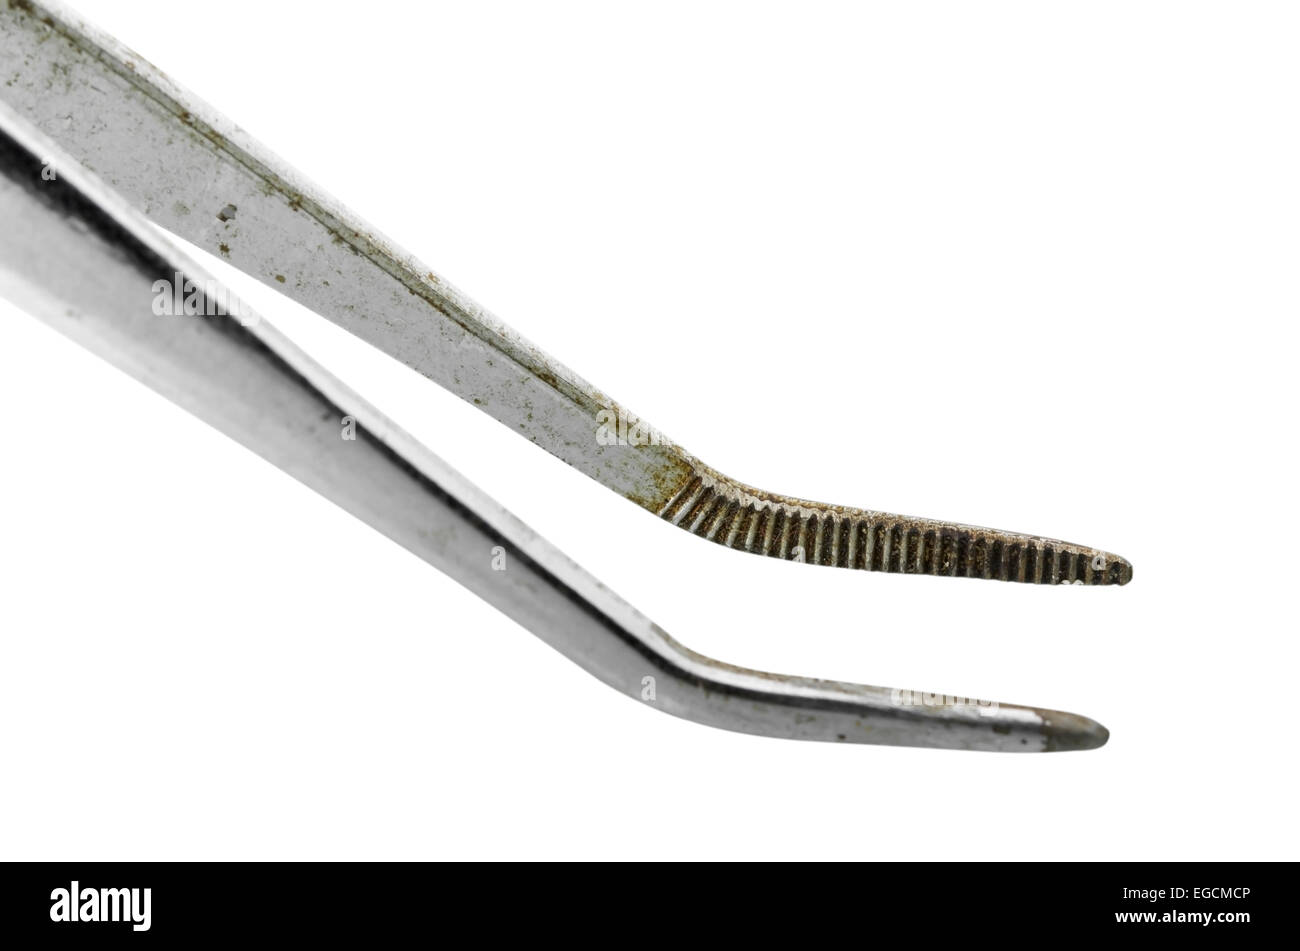 Old medical forceps with curved ends isolated over white background with clipping path - Stock Image